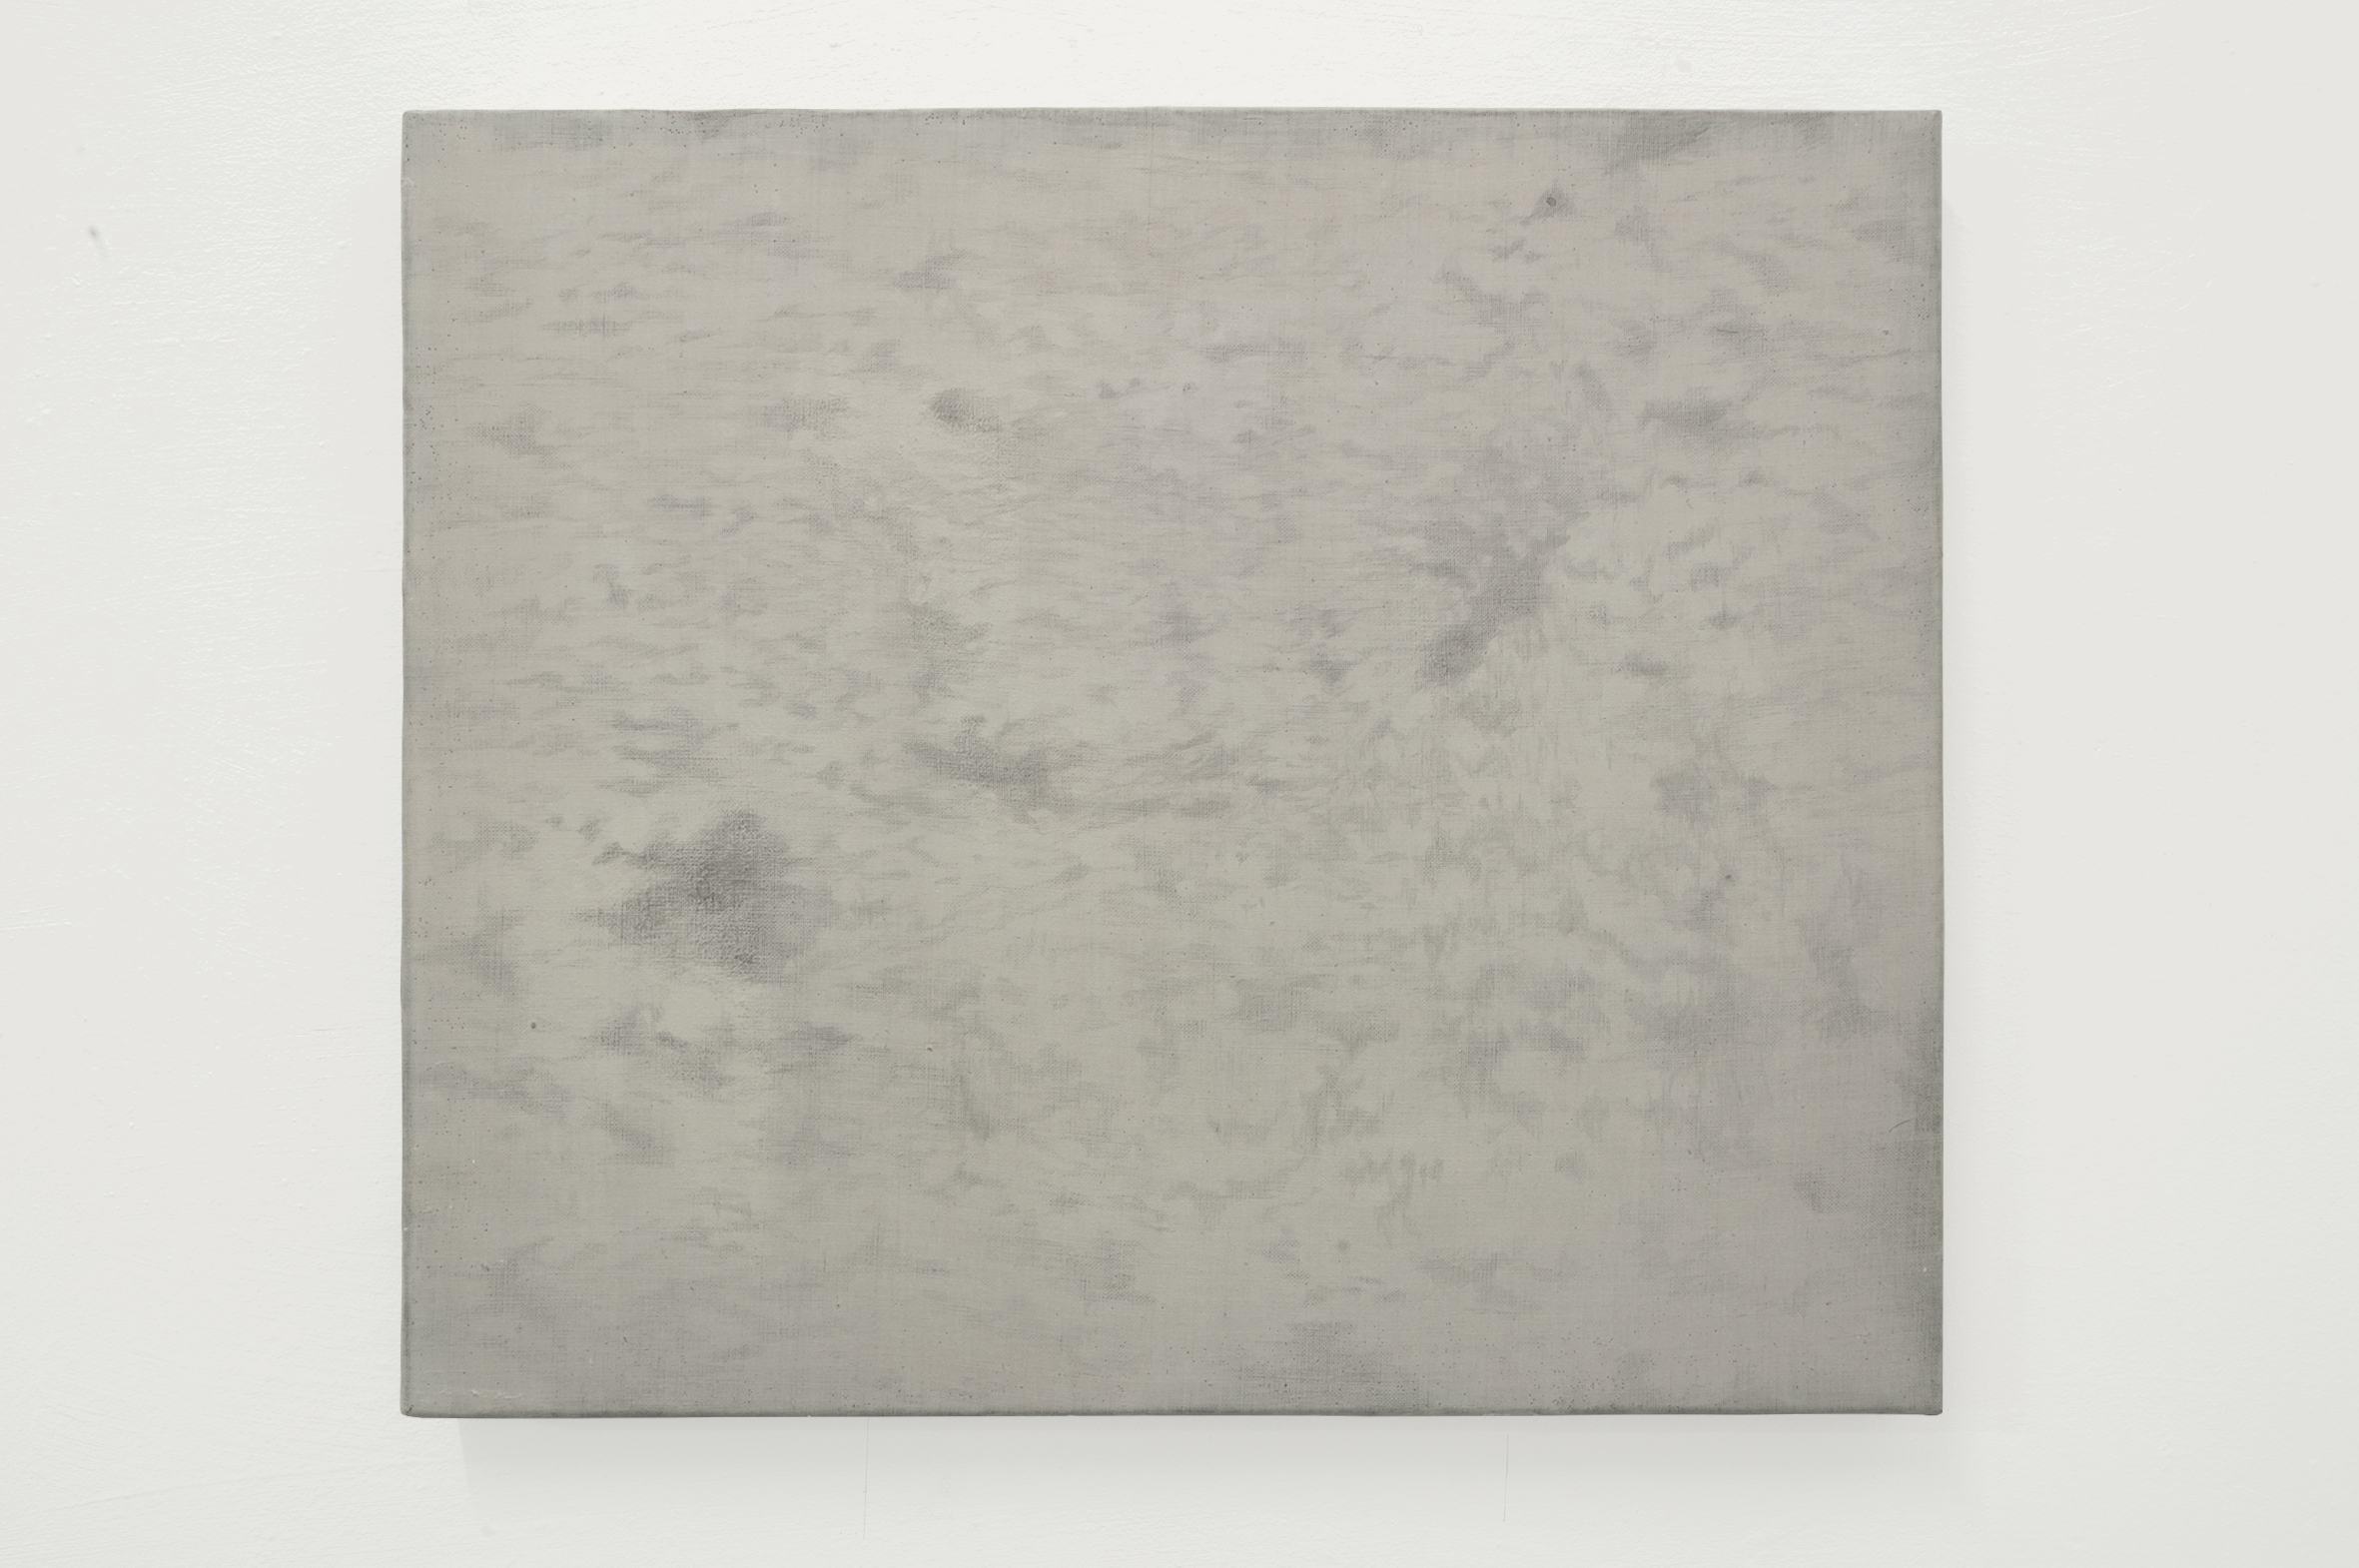 Giulio Saverio Rossi, Earthless map – the clouds (#1), 2018, silverpoint on bone white. Courtesy the artist